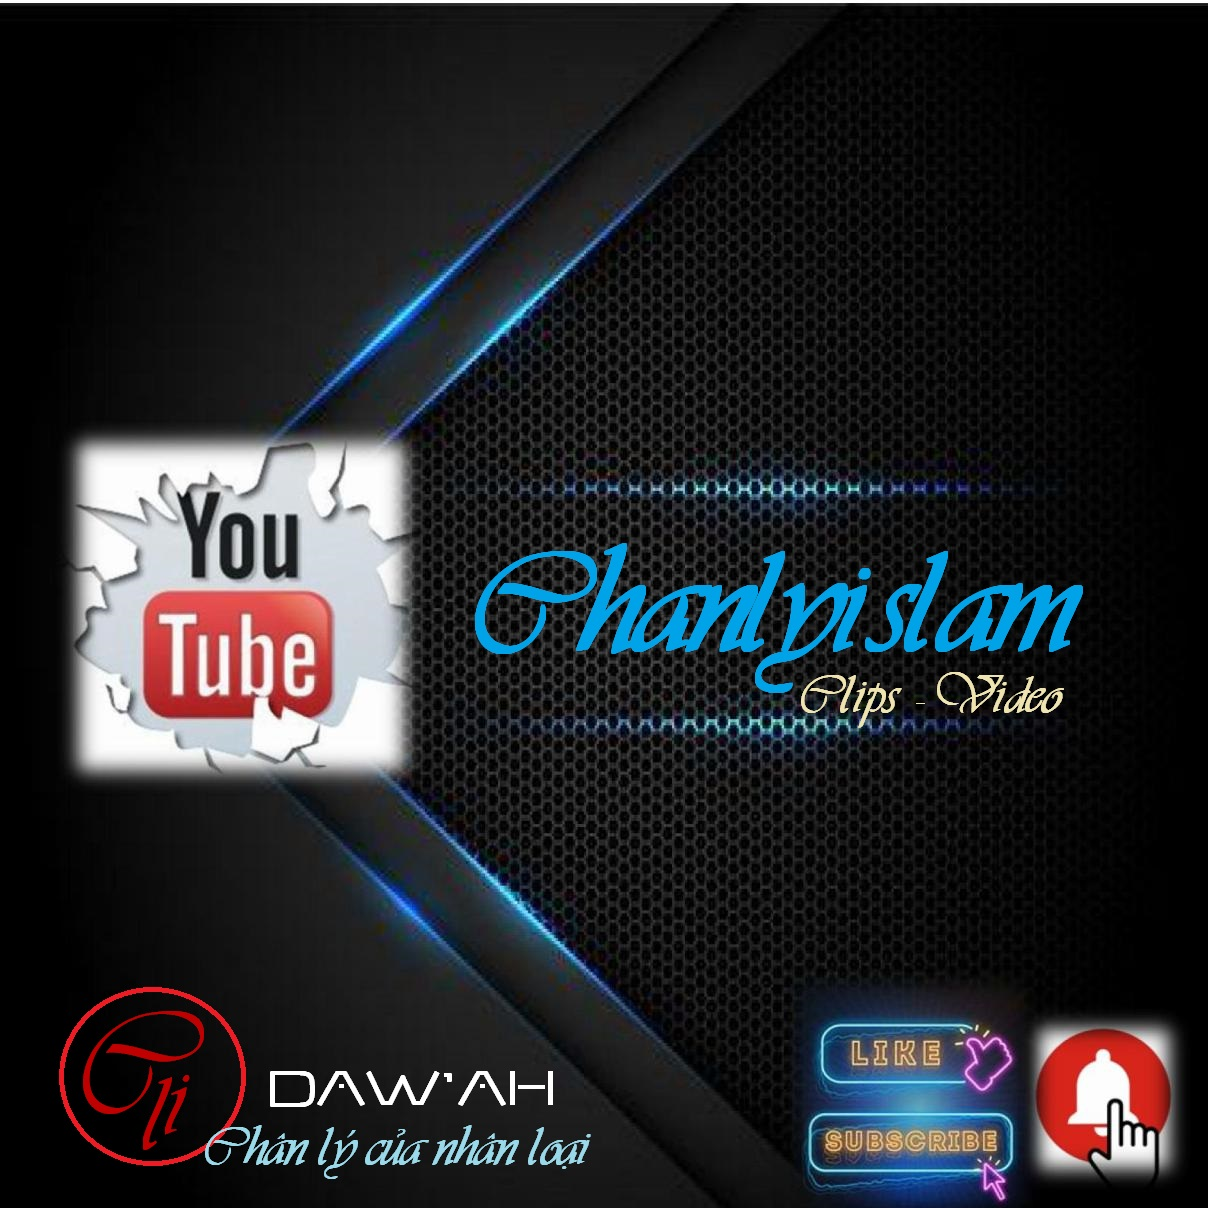 YOUTUBE CHANLYISLAM MEDIA